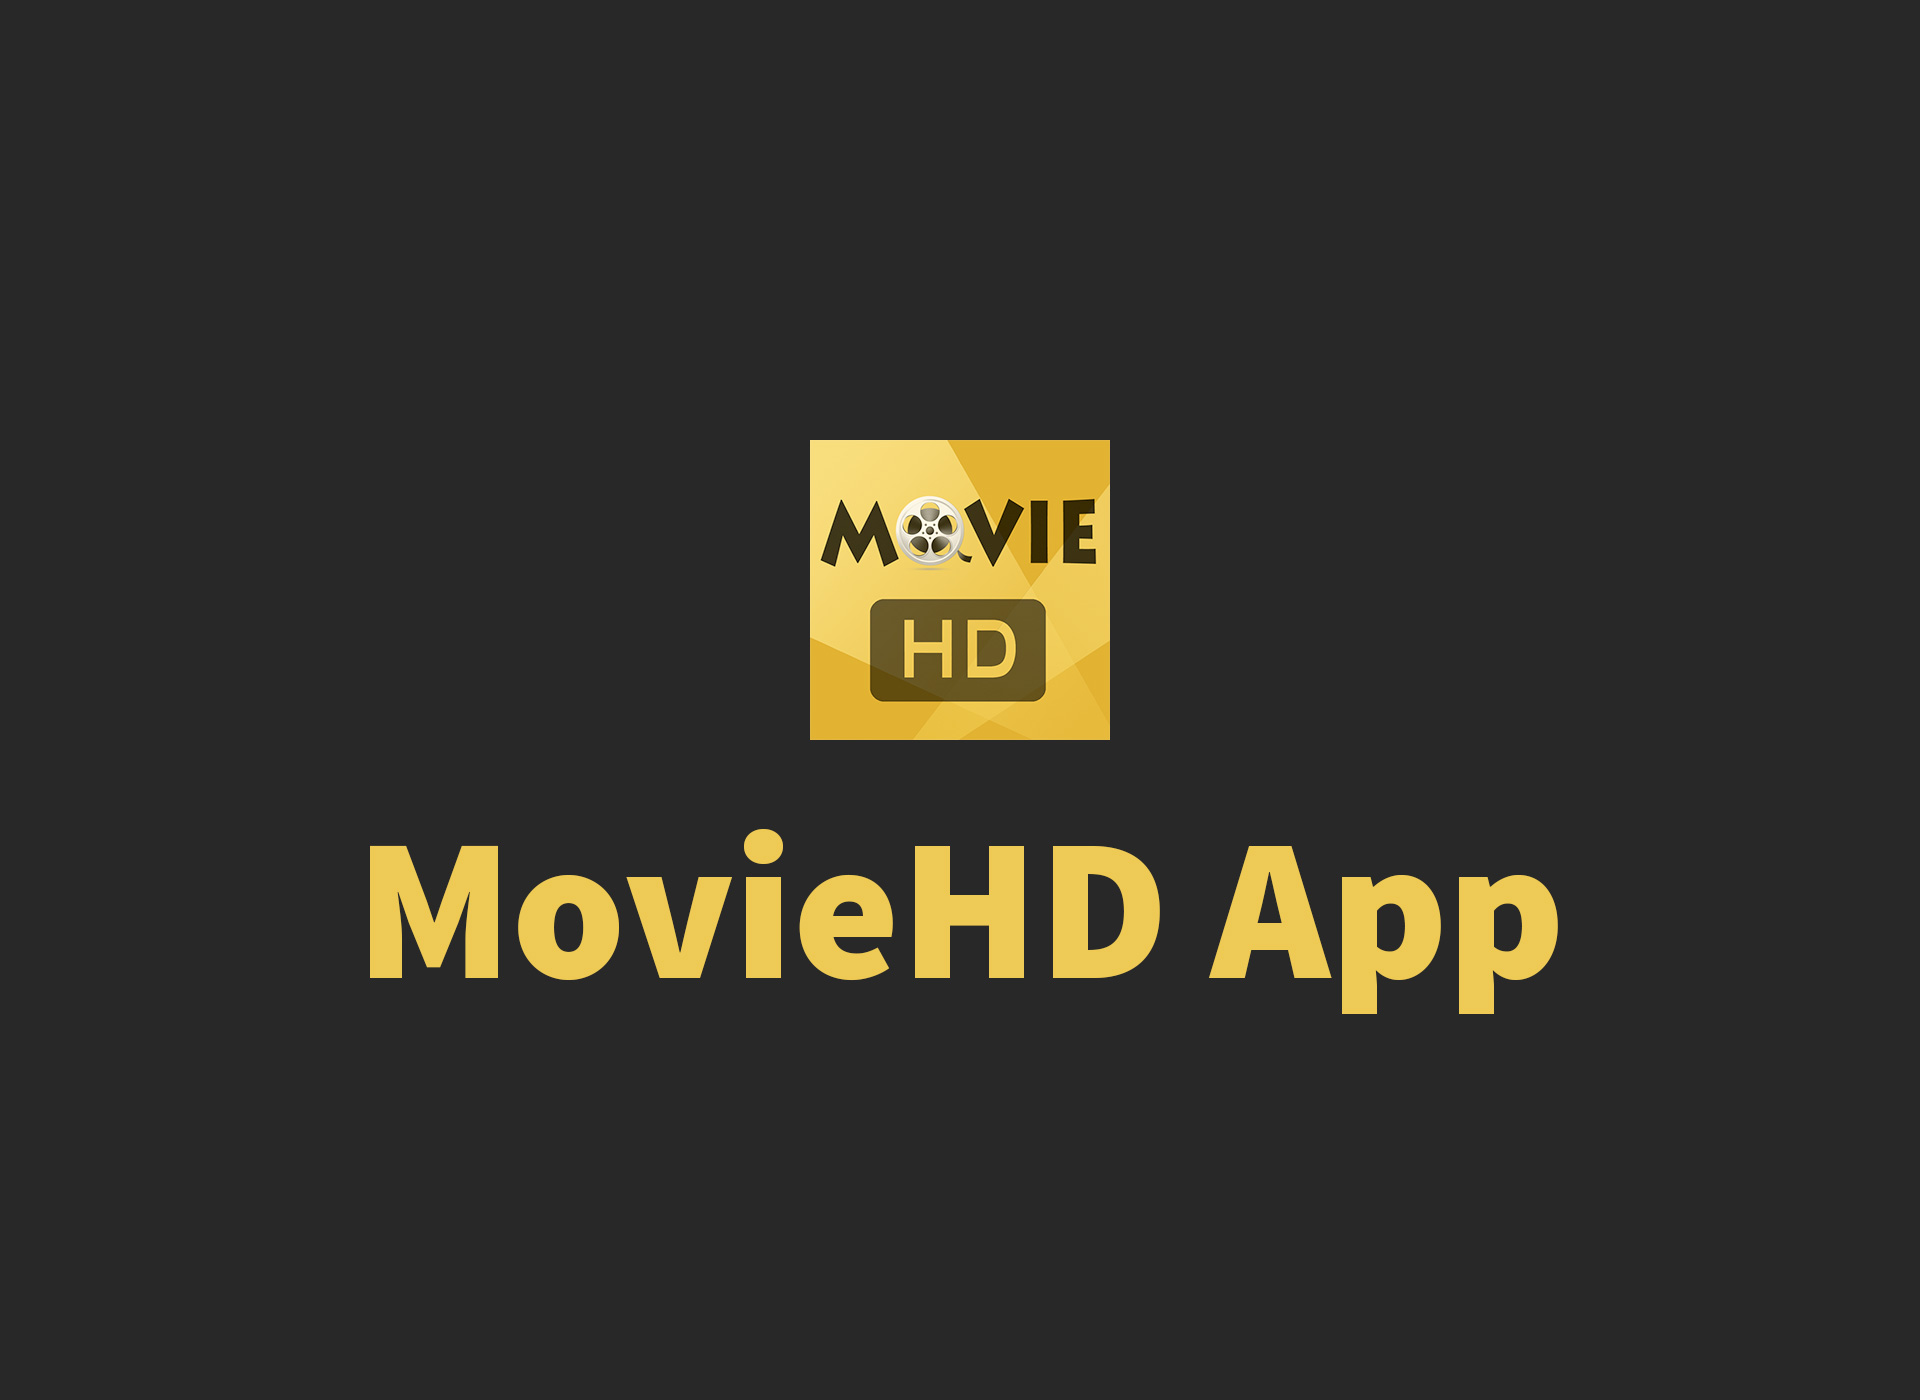 movie hd app downloaden voor android. Black Bedroom Furniture Sets. Home Design Ideas